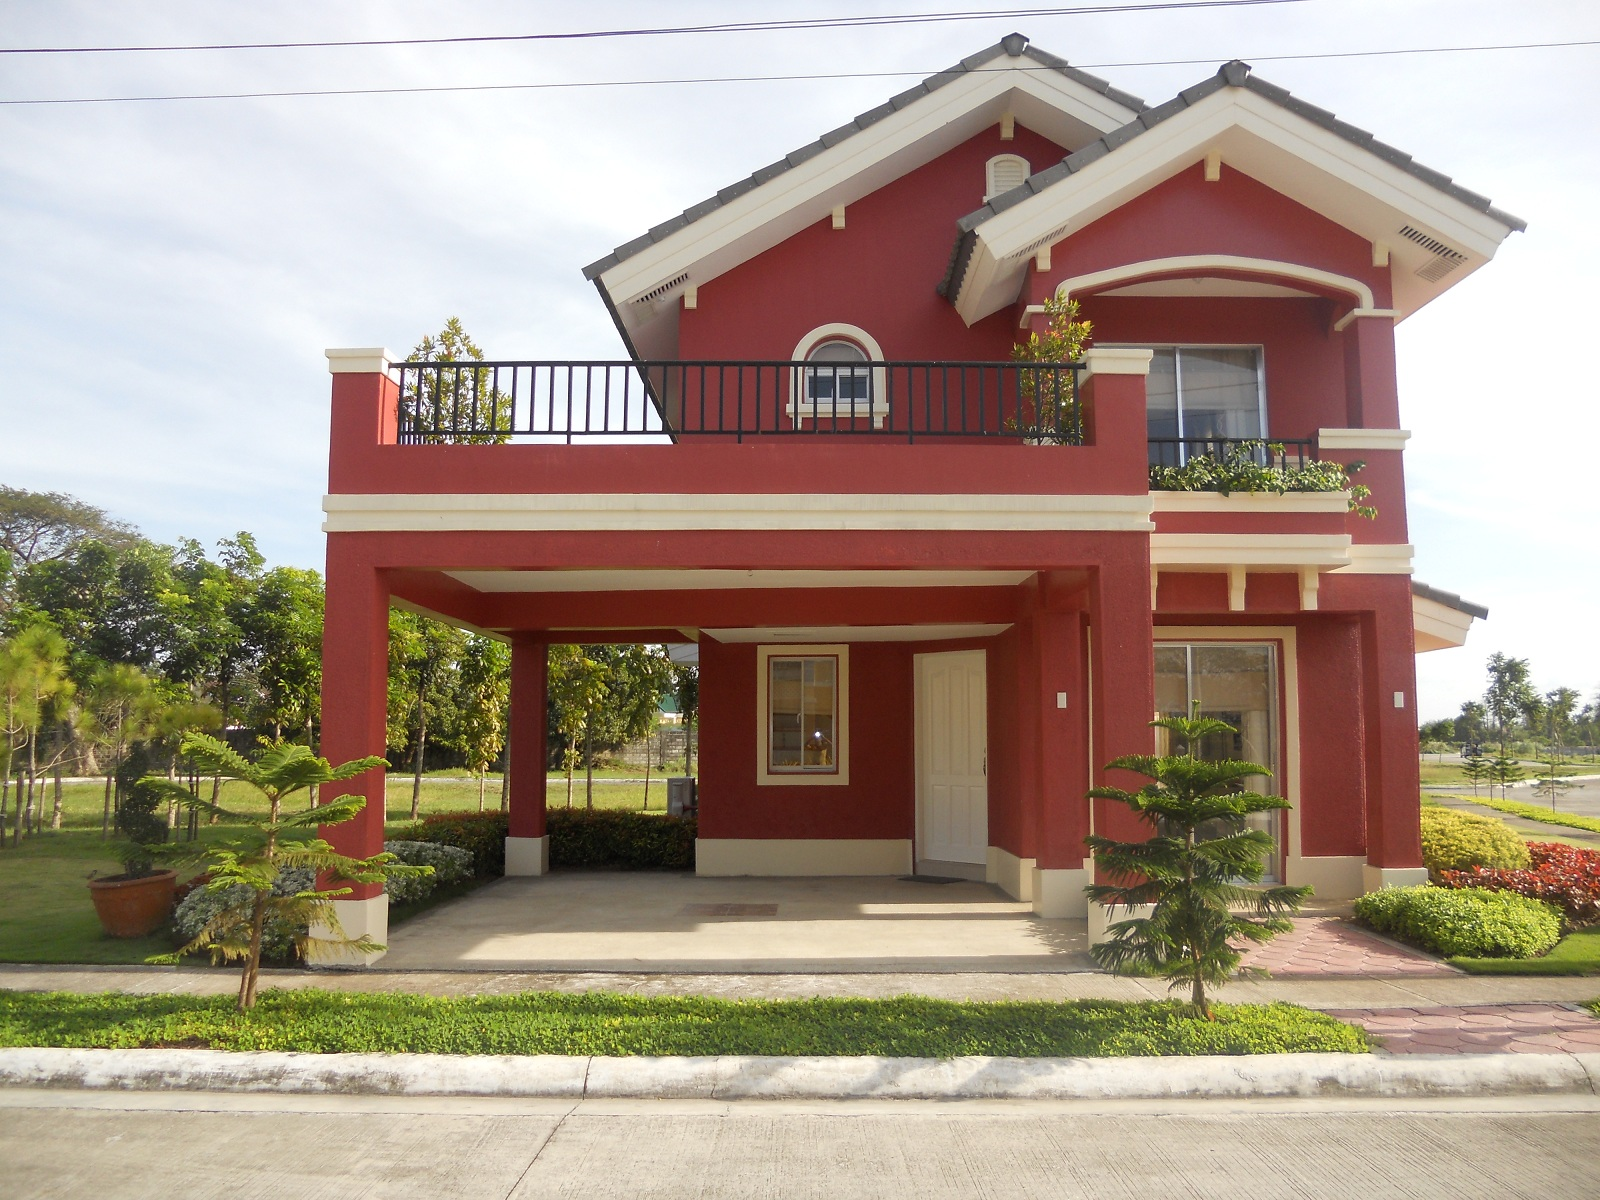 Althea or ruby model house of savannah glades iloilo by for Beautiful model house